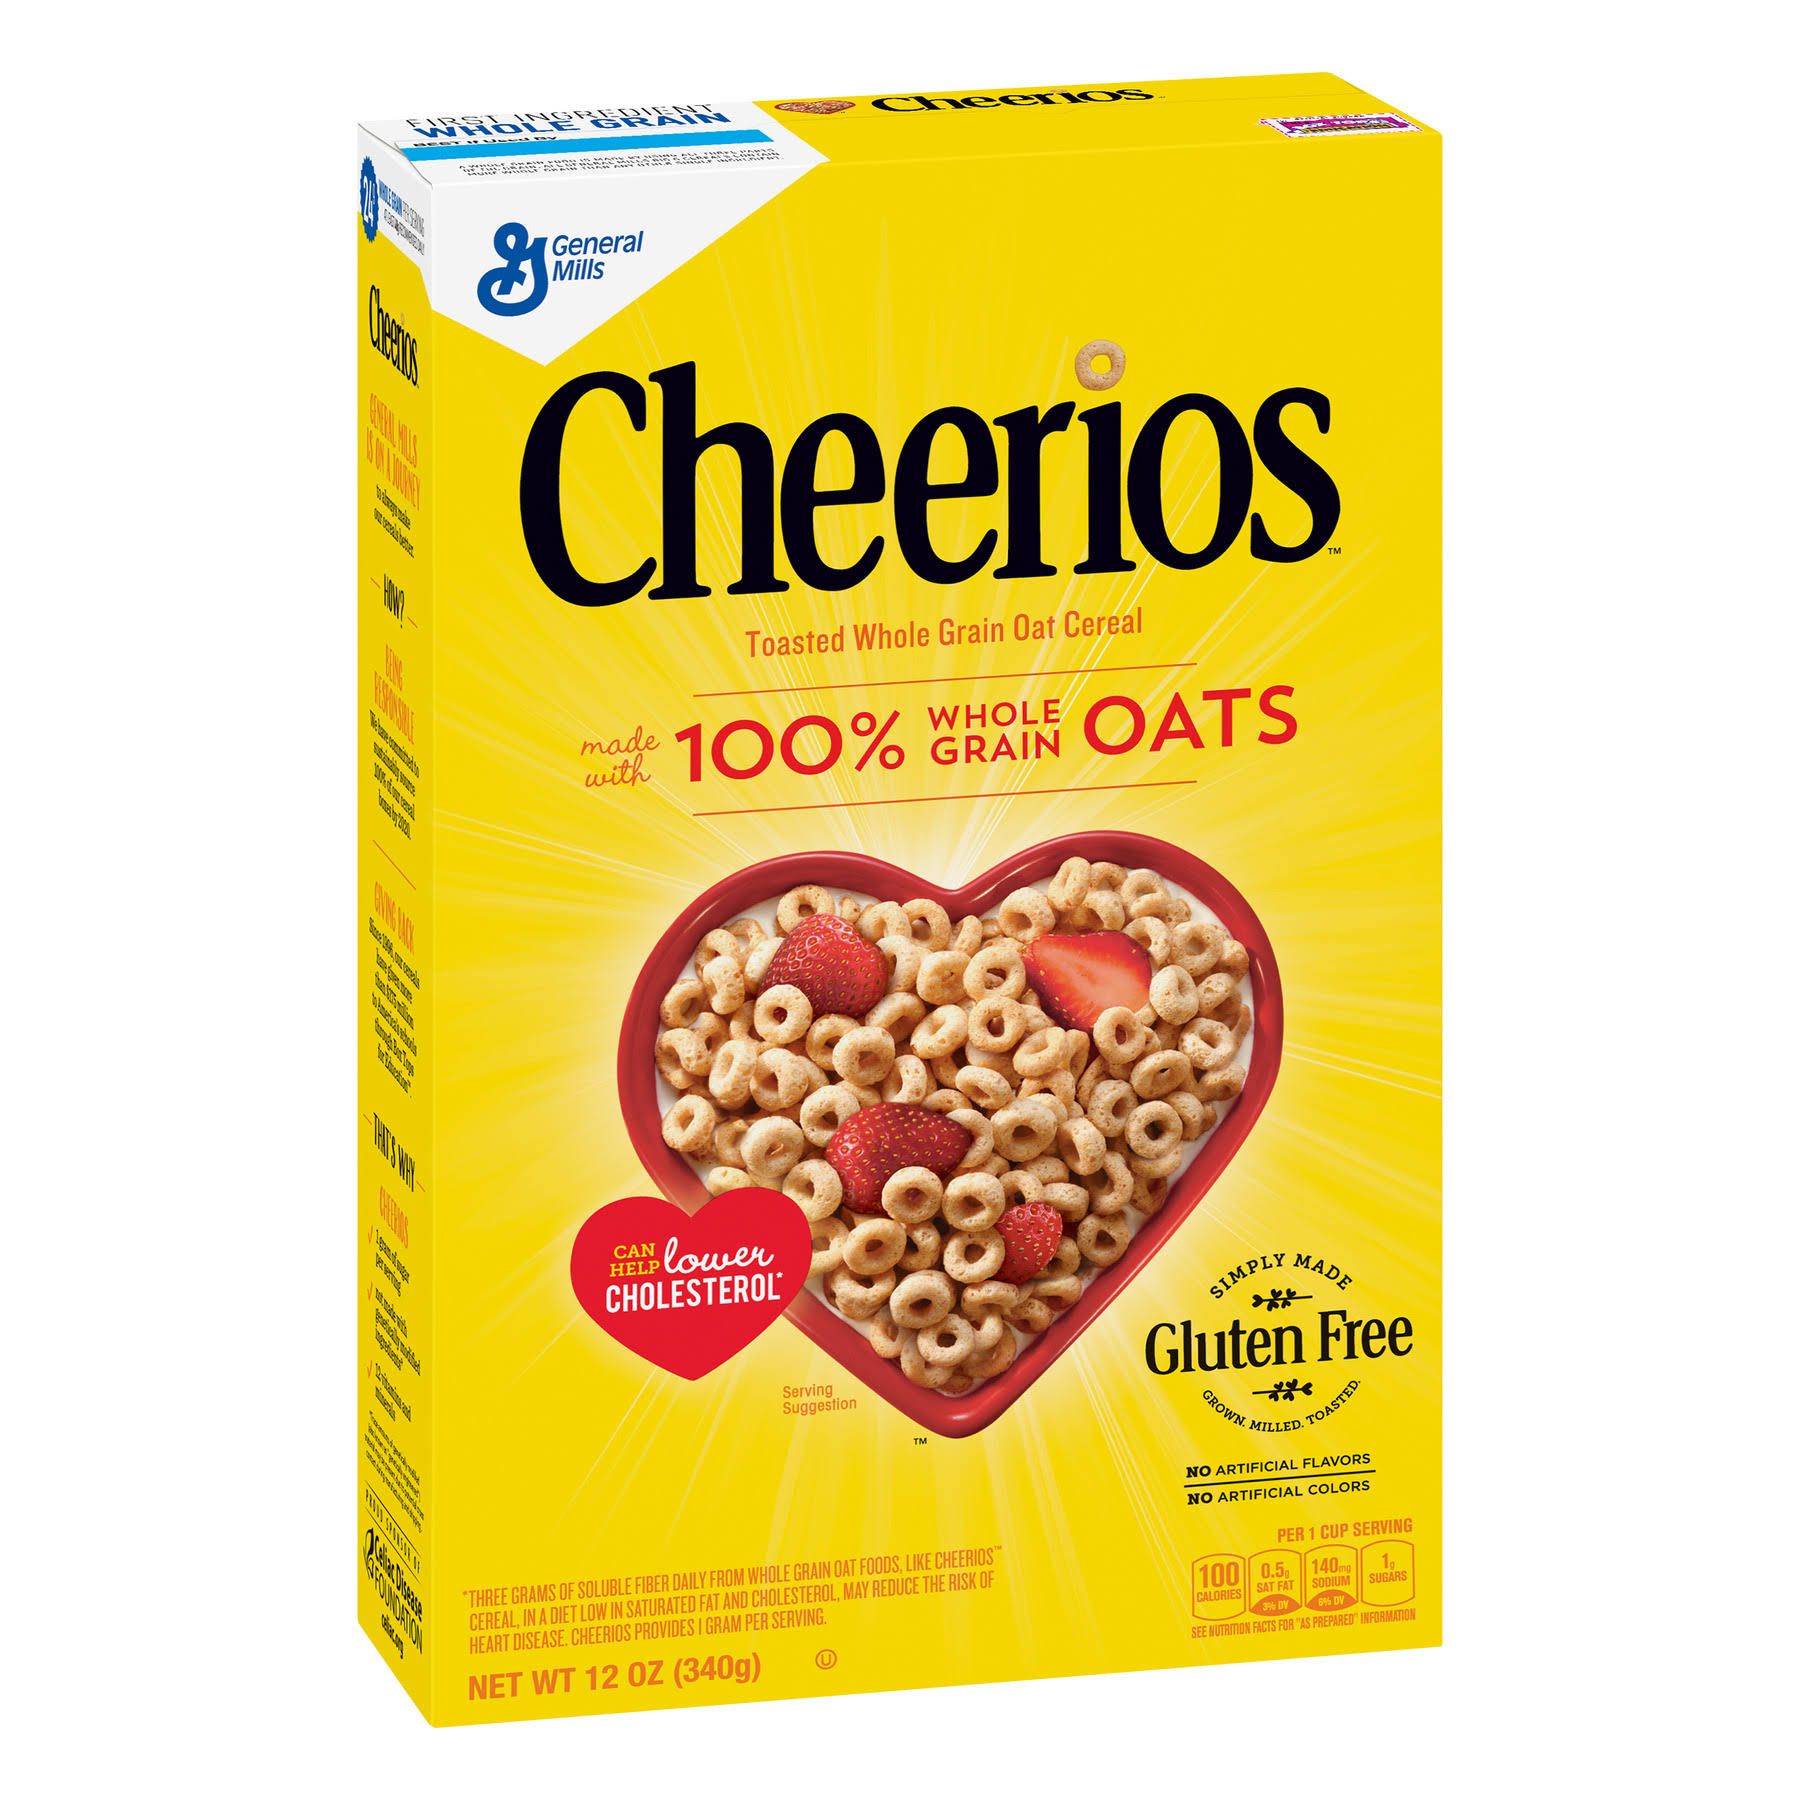 General Mills Cheerios Toasted Whole Grain Oat Cereal - 12oz